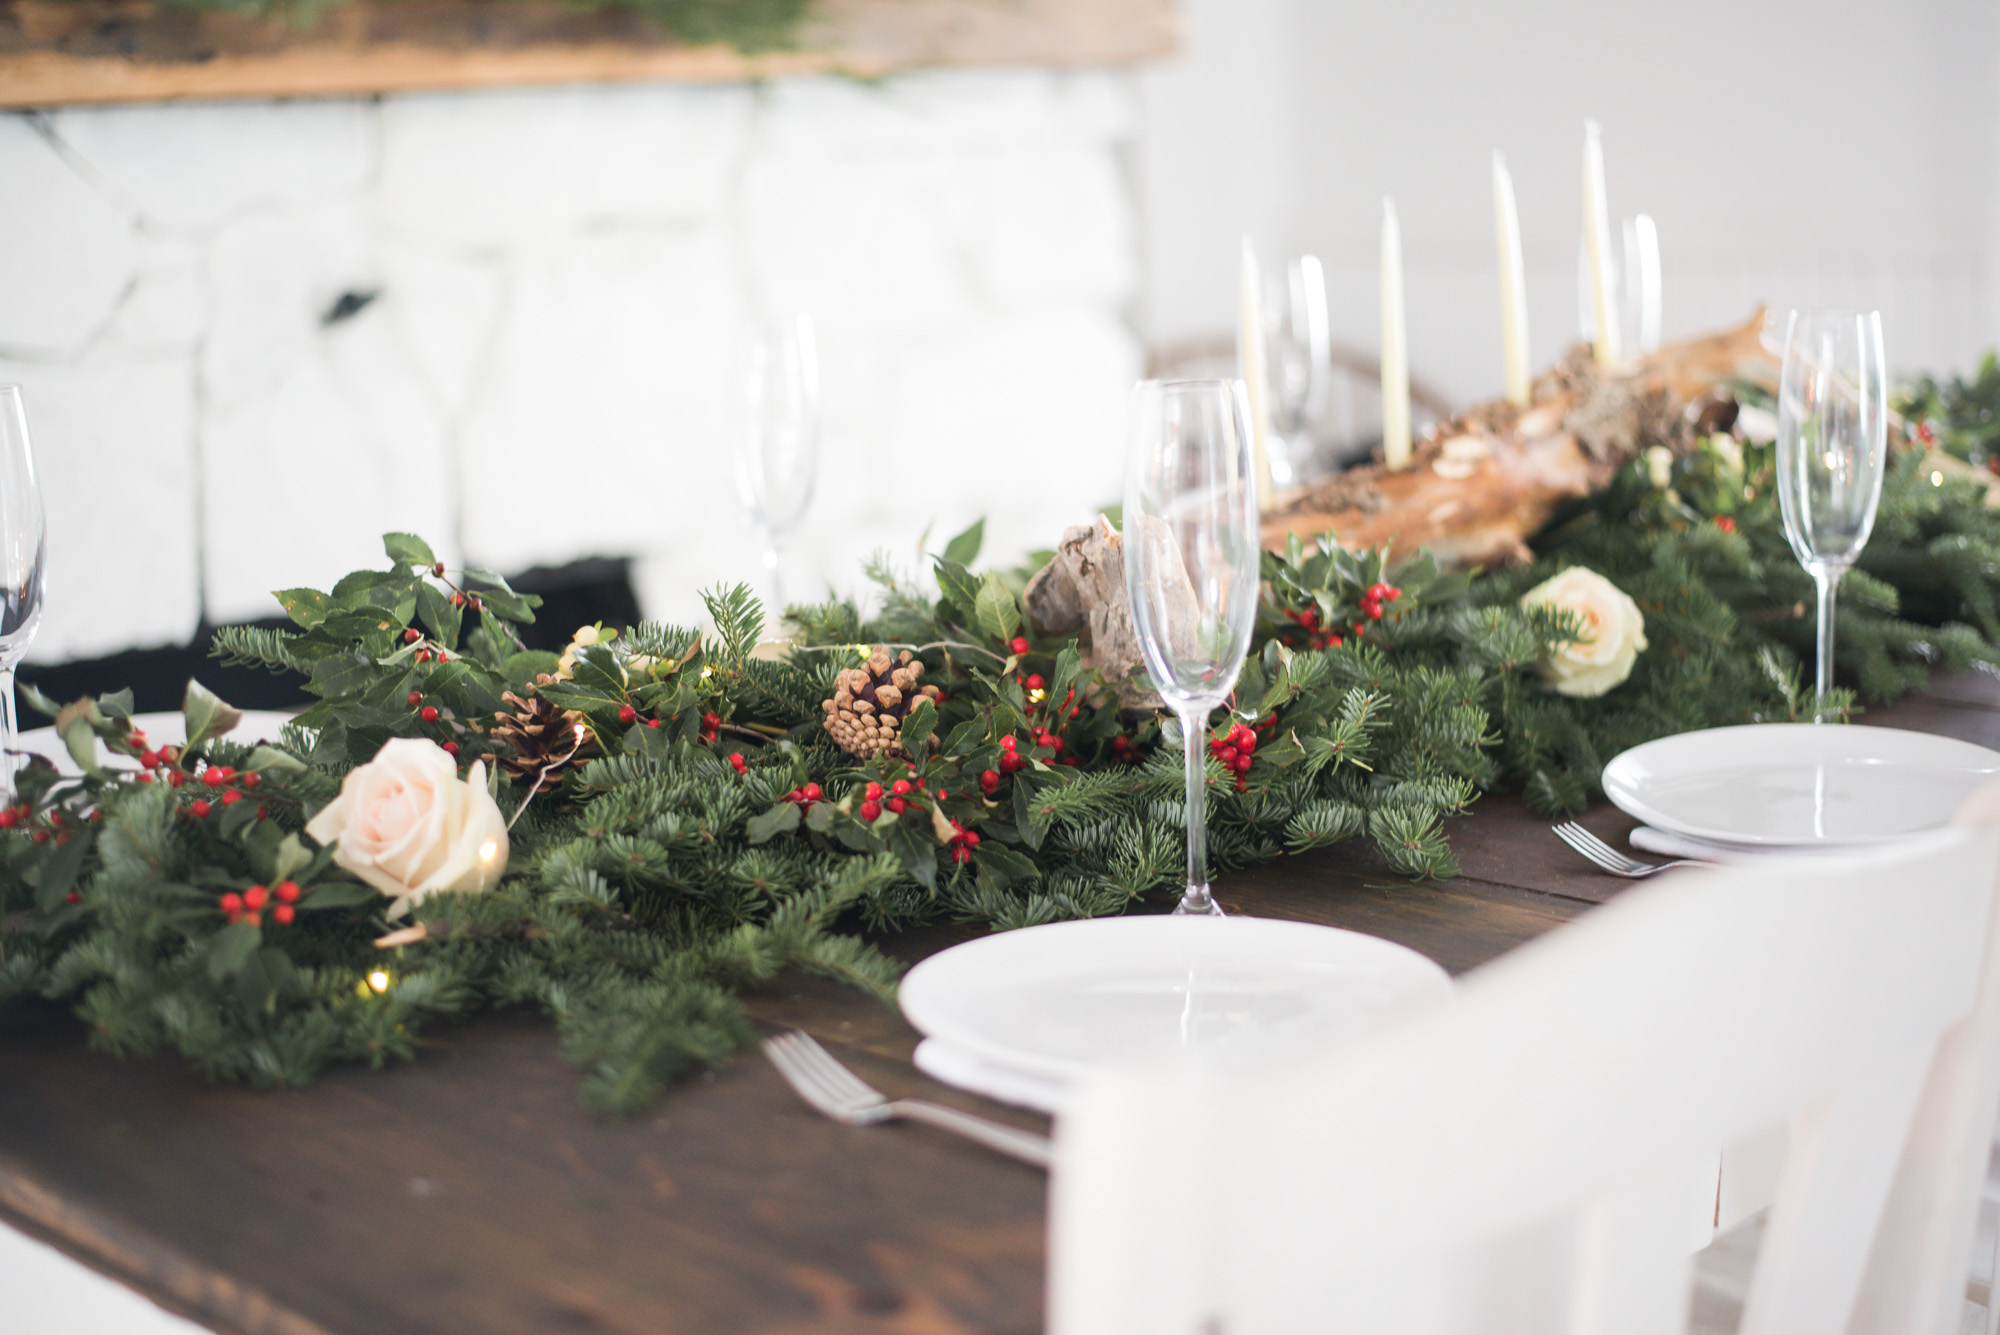 Wild Rosebuds | For the love of getting together with the NSLC | Christmas Tablescape with evergreens and canadian holly for a holiday party